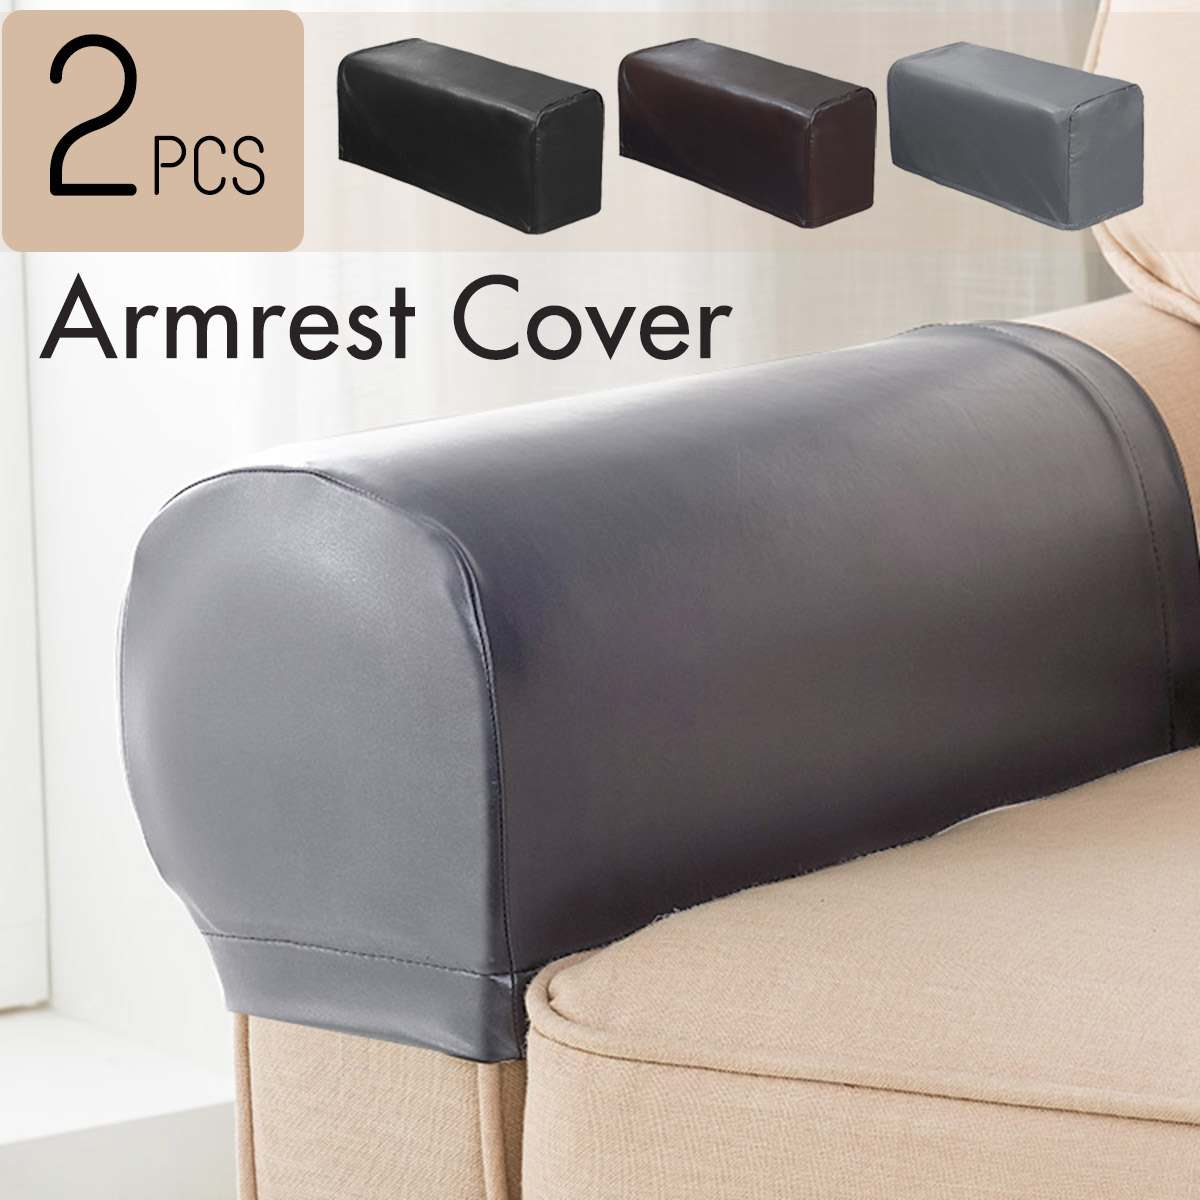 Swell Us 8 67 17 Off Elastic 2Pc Set Pu Leather Sofa Covers Waterproof Sofa Armrest Covers For Couch Chair Arm Protectors Slipcover Stretchy In Sofa Cover Gmtry Best Dining Table And Chair Ideas Images Gmtryco